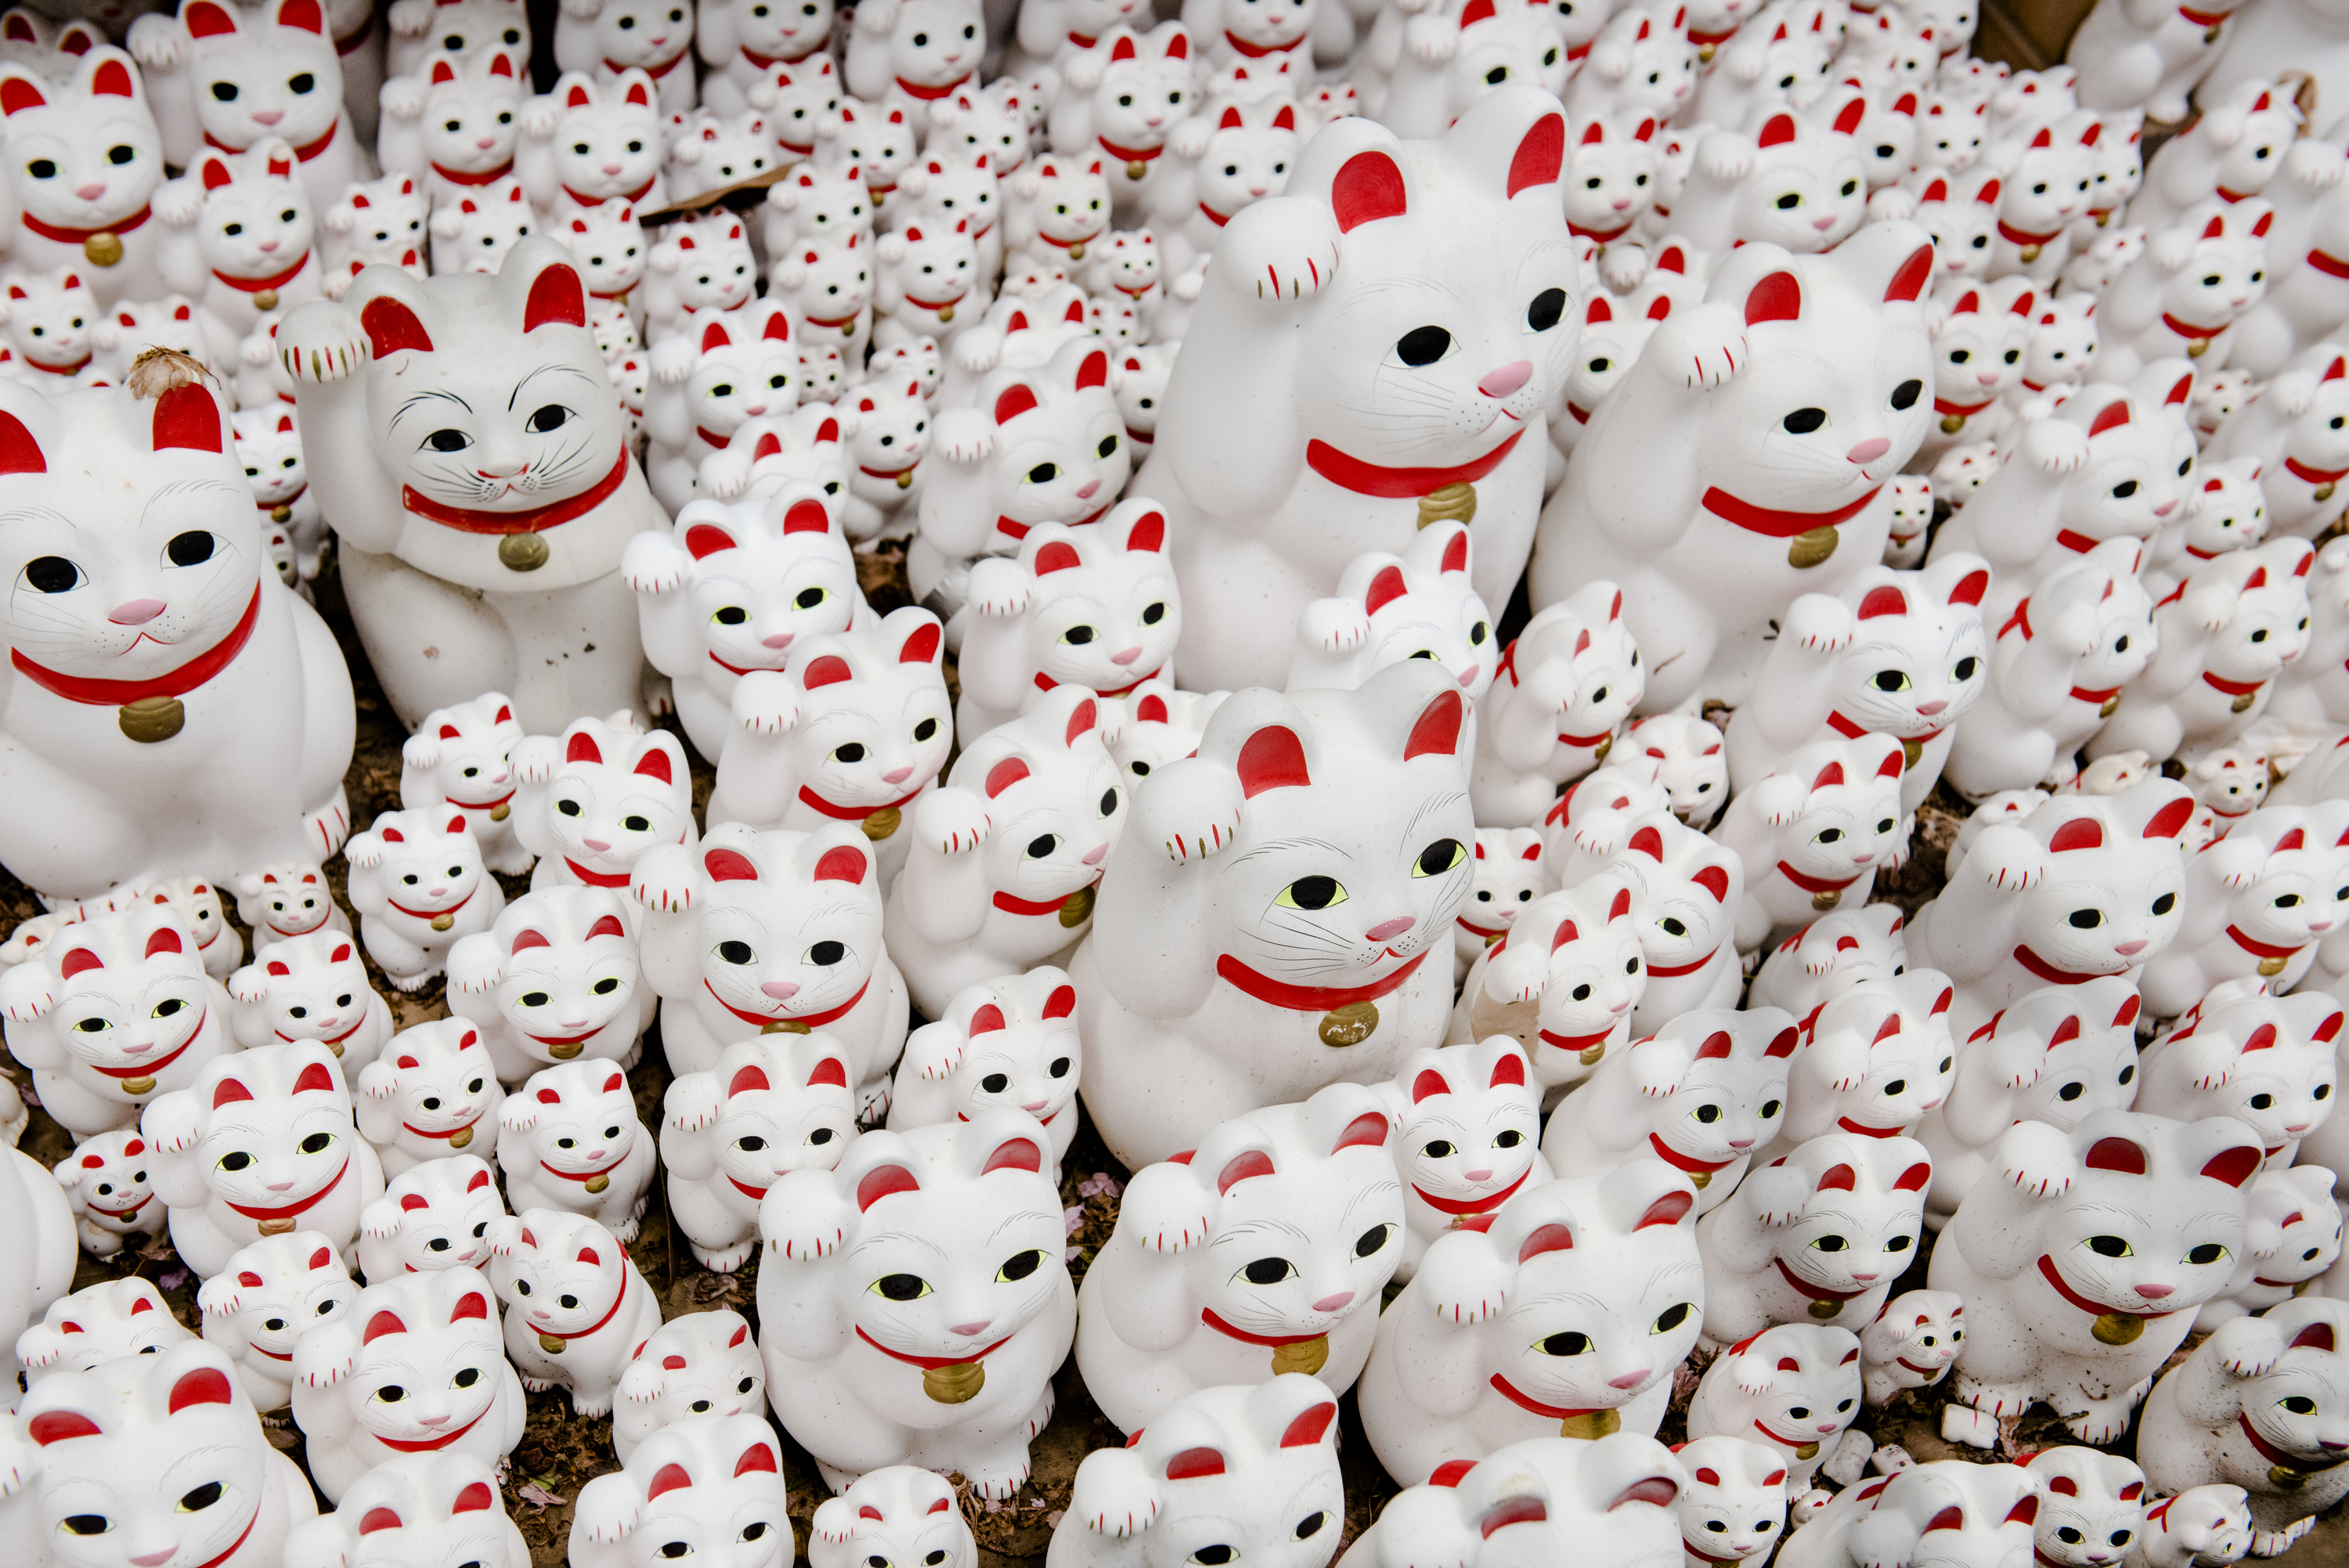 Top places to see and buy maneki-neko in Tokyo